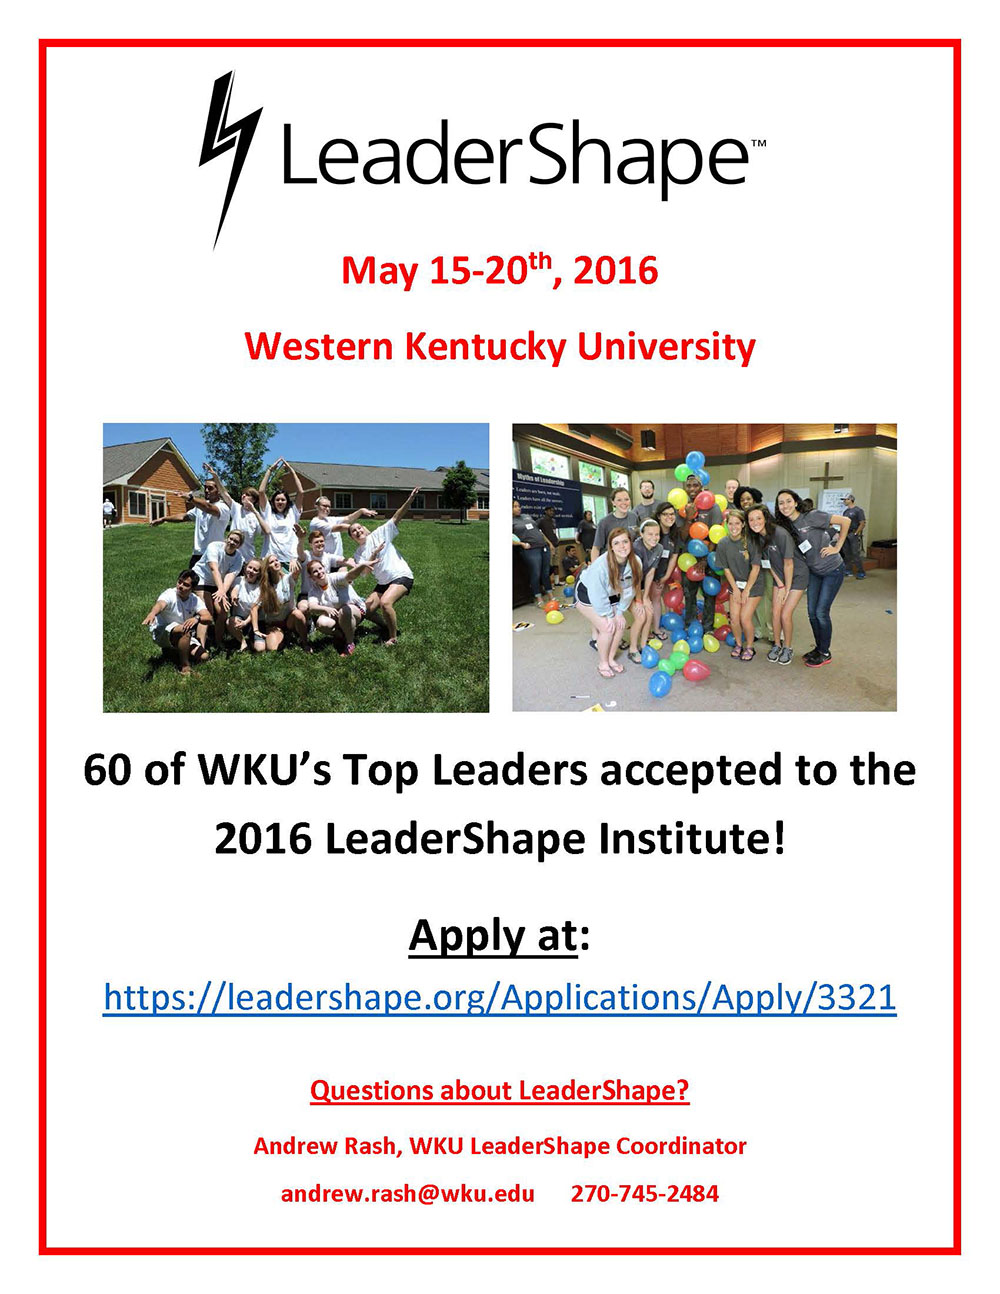 leadershape flyer 2016